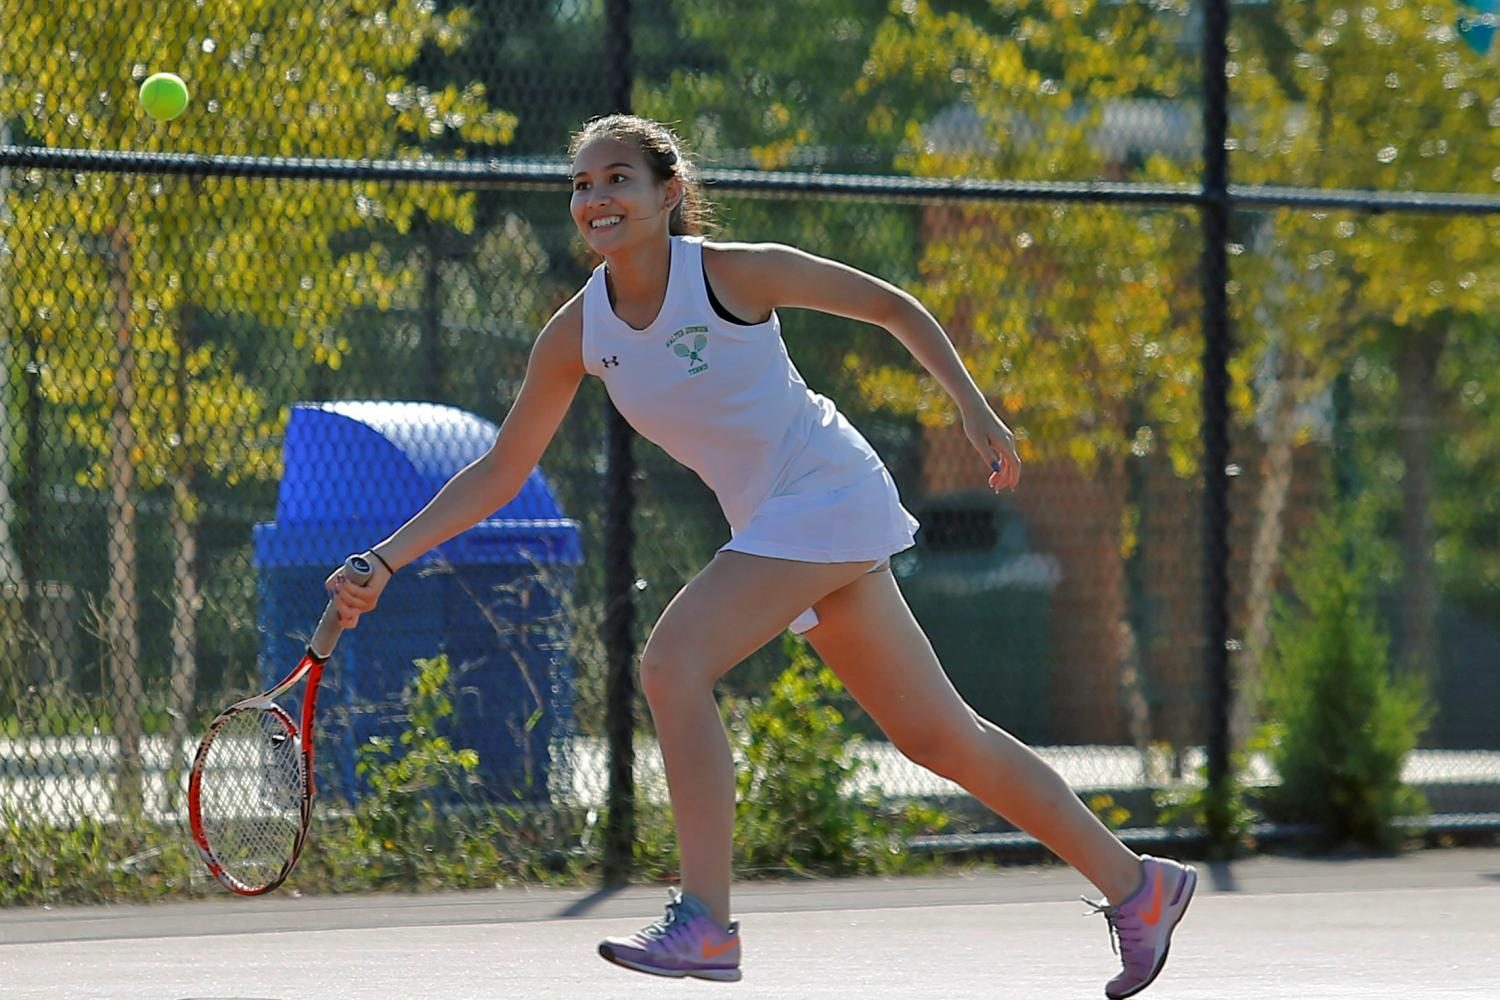 Girls' tennis moved to spring for 2018-2019 school year